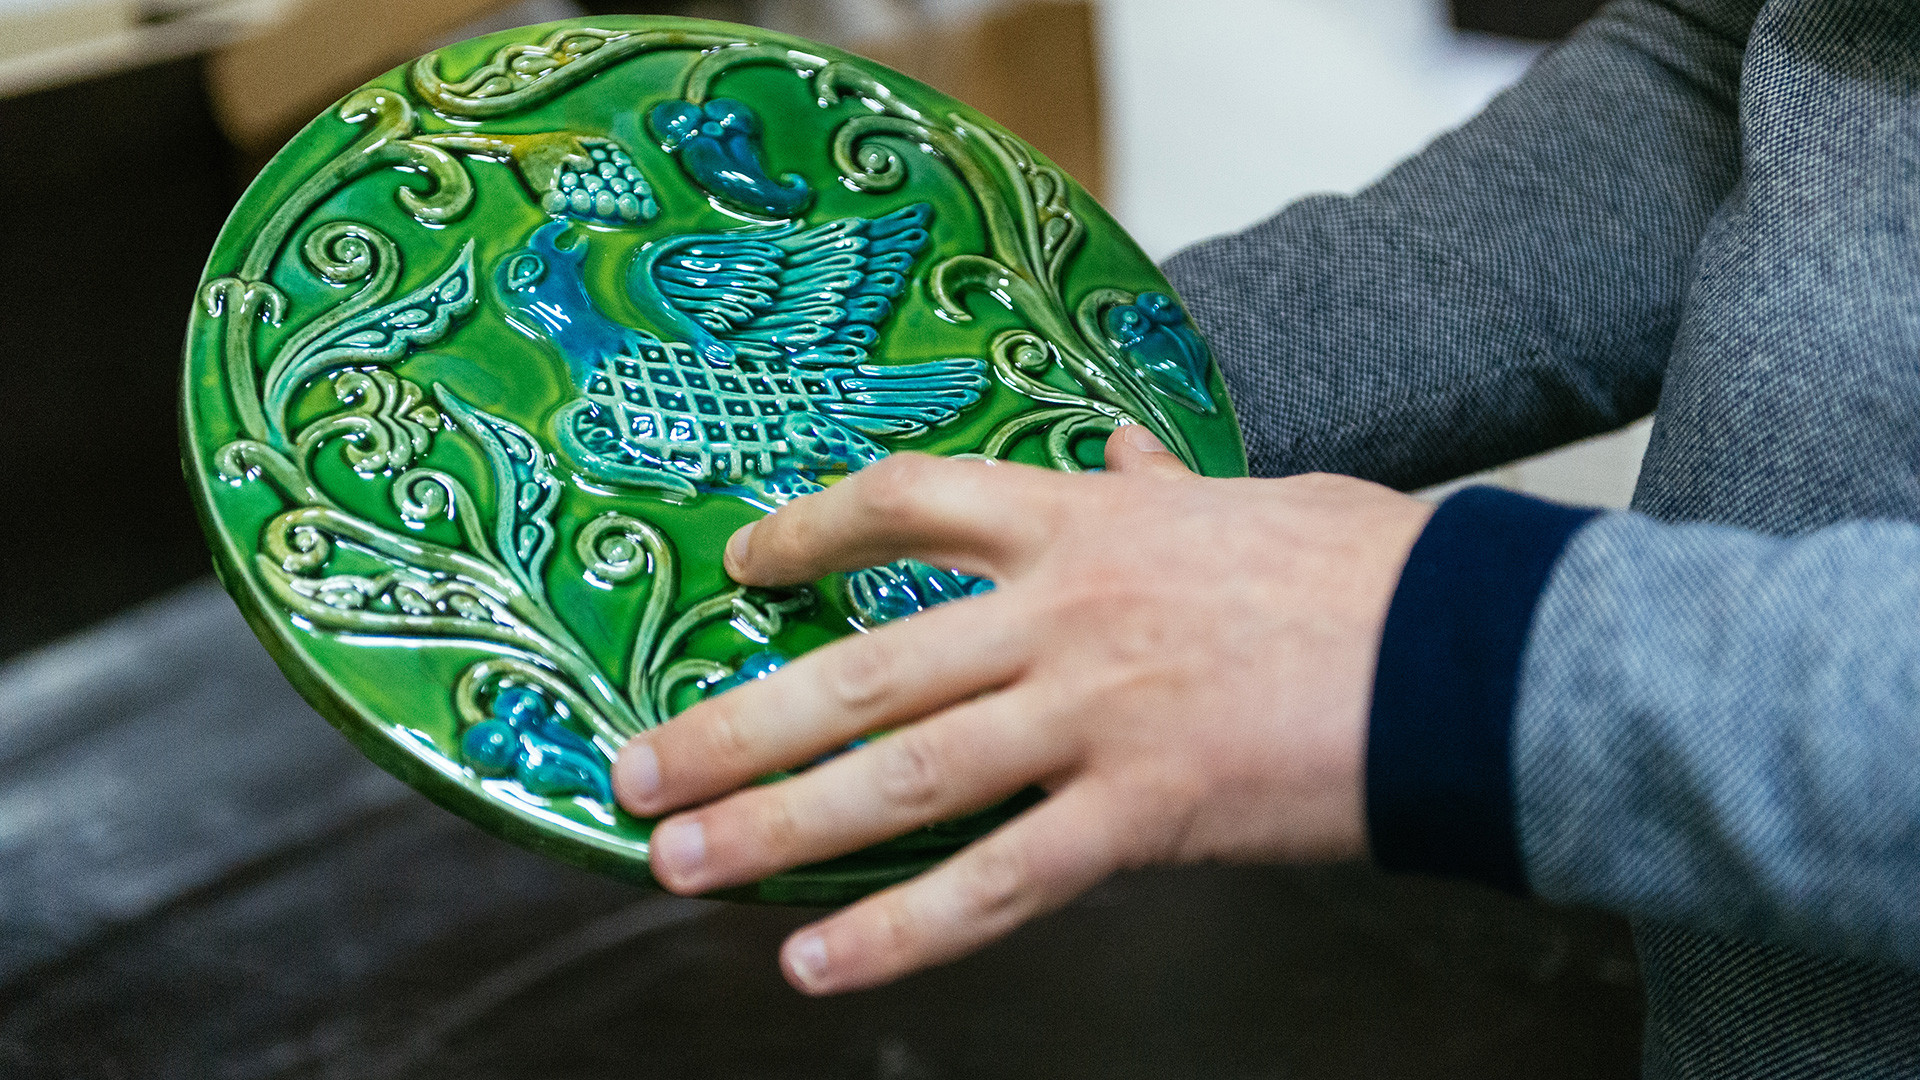 Muravleny izrazets made by CeramicaDecor, one of the Russian companies making souvenir tiles.